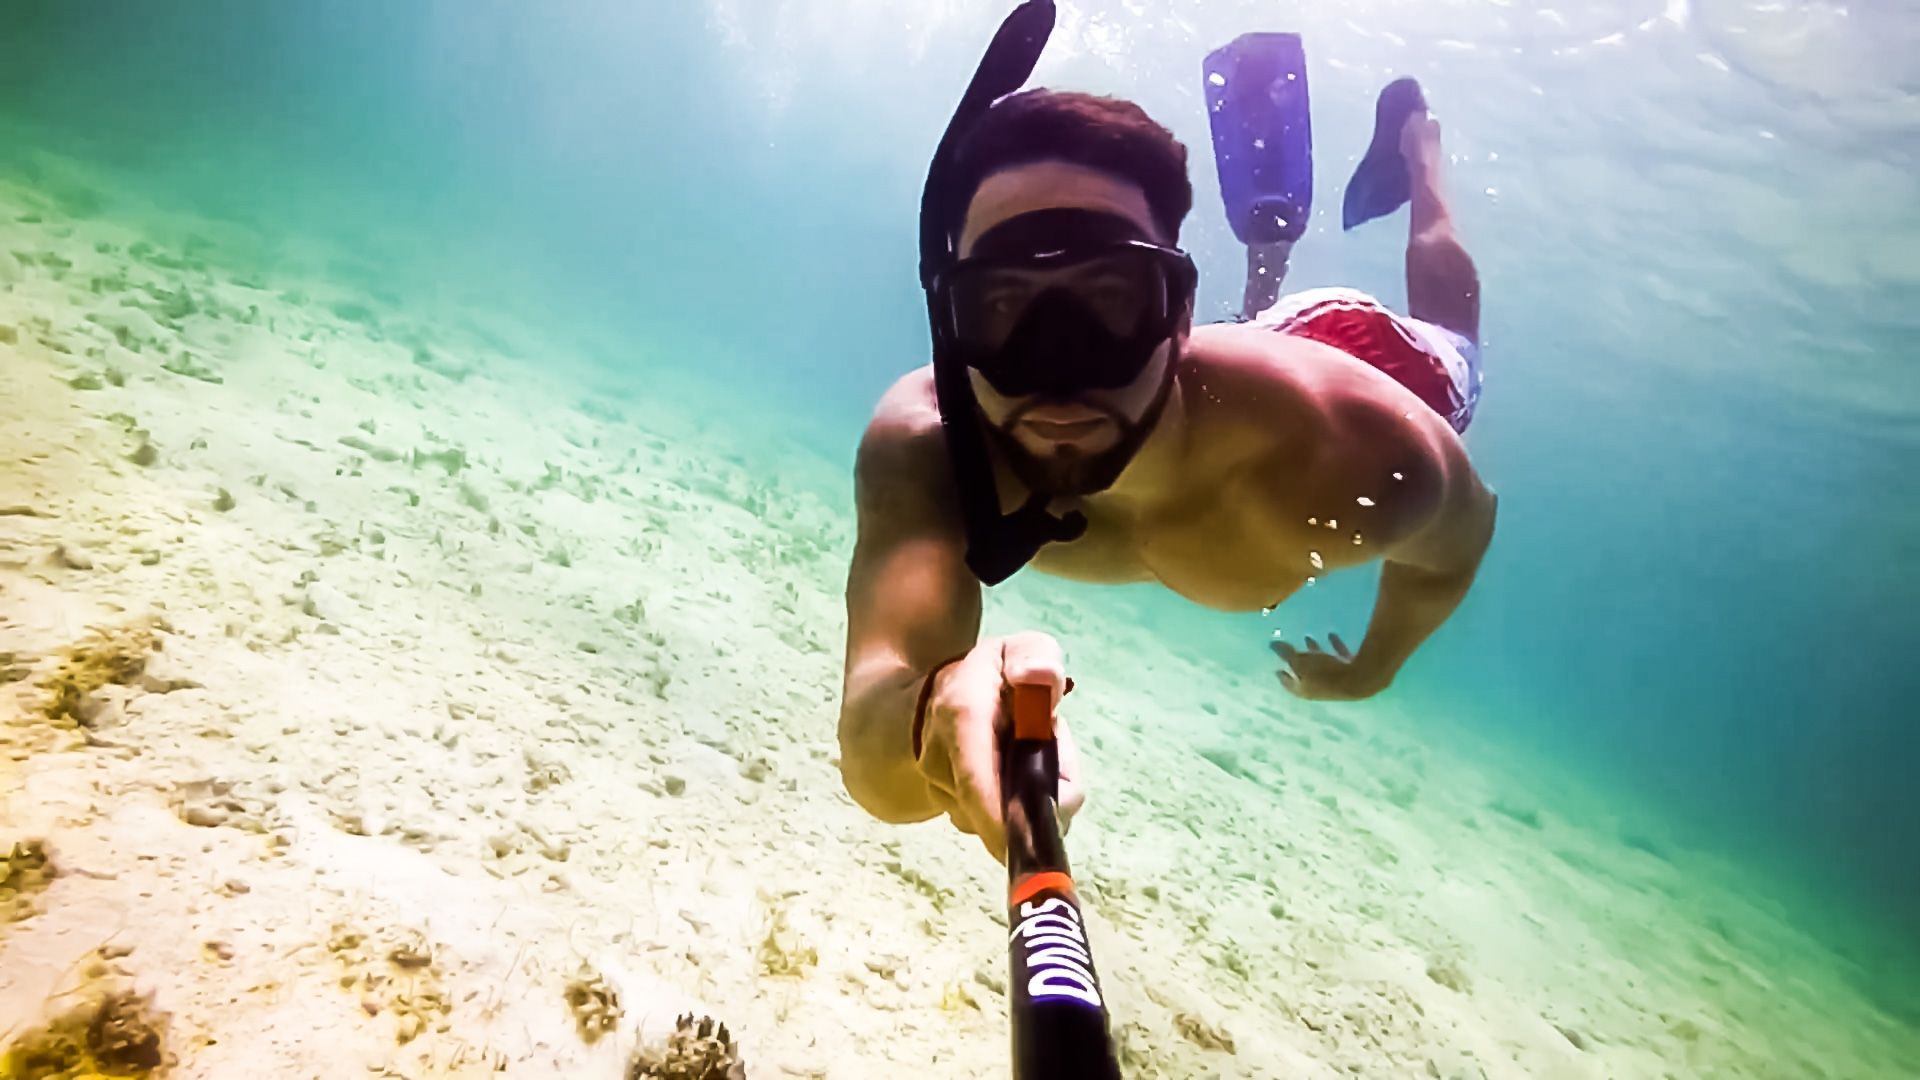 Create amazing videos with the camera accessory that will help you do it. 360° Control. Waterproof. Camera Pole. Unleash your GoPro with Spivo.